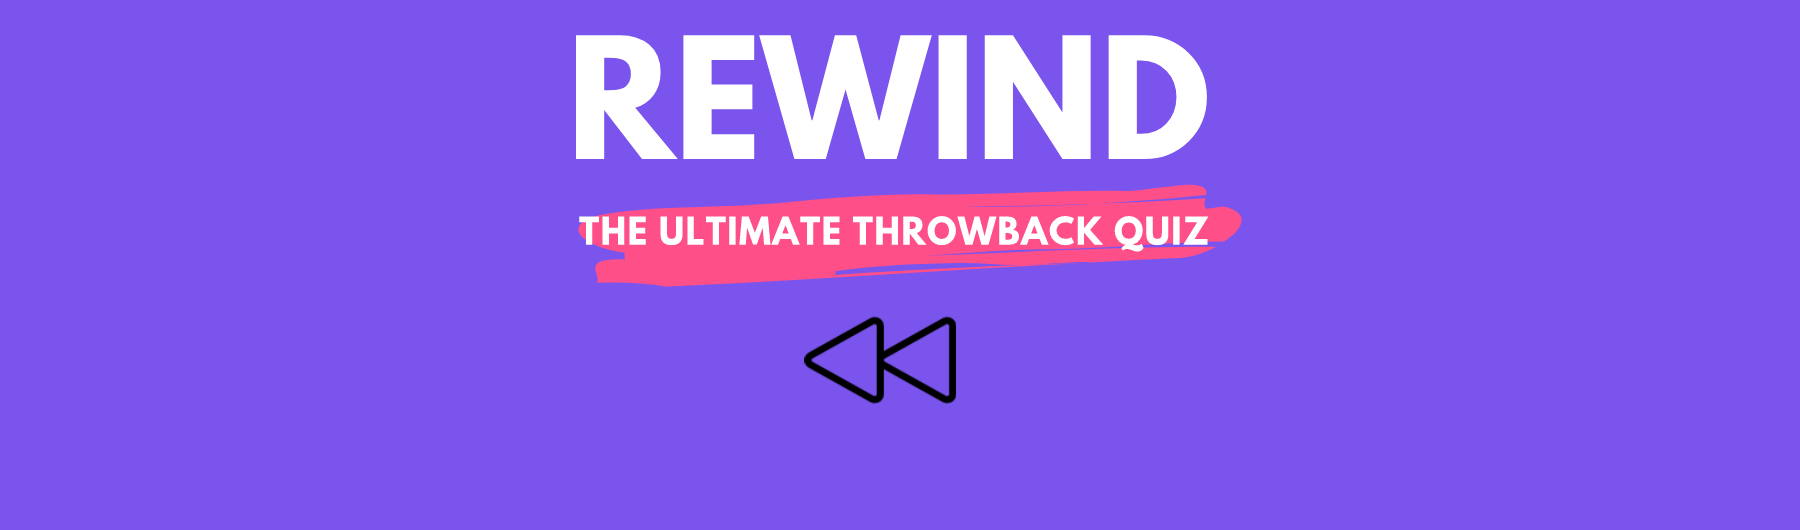 Rewind: The Ultimate Throwback Quiz